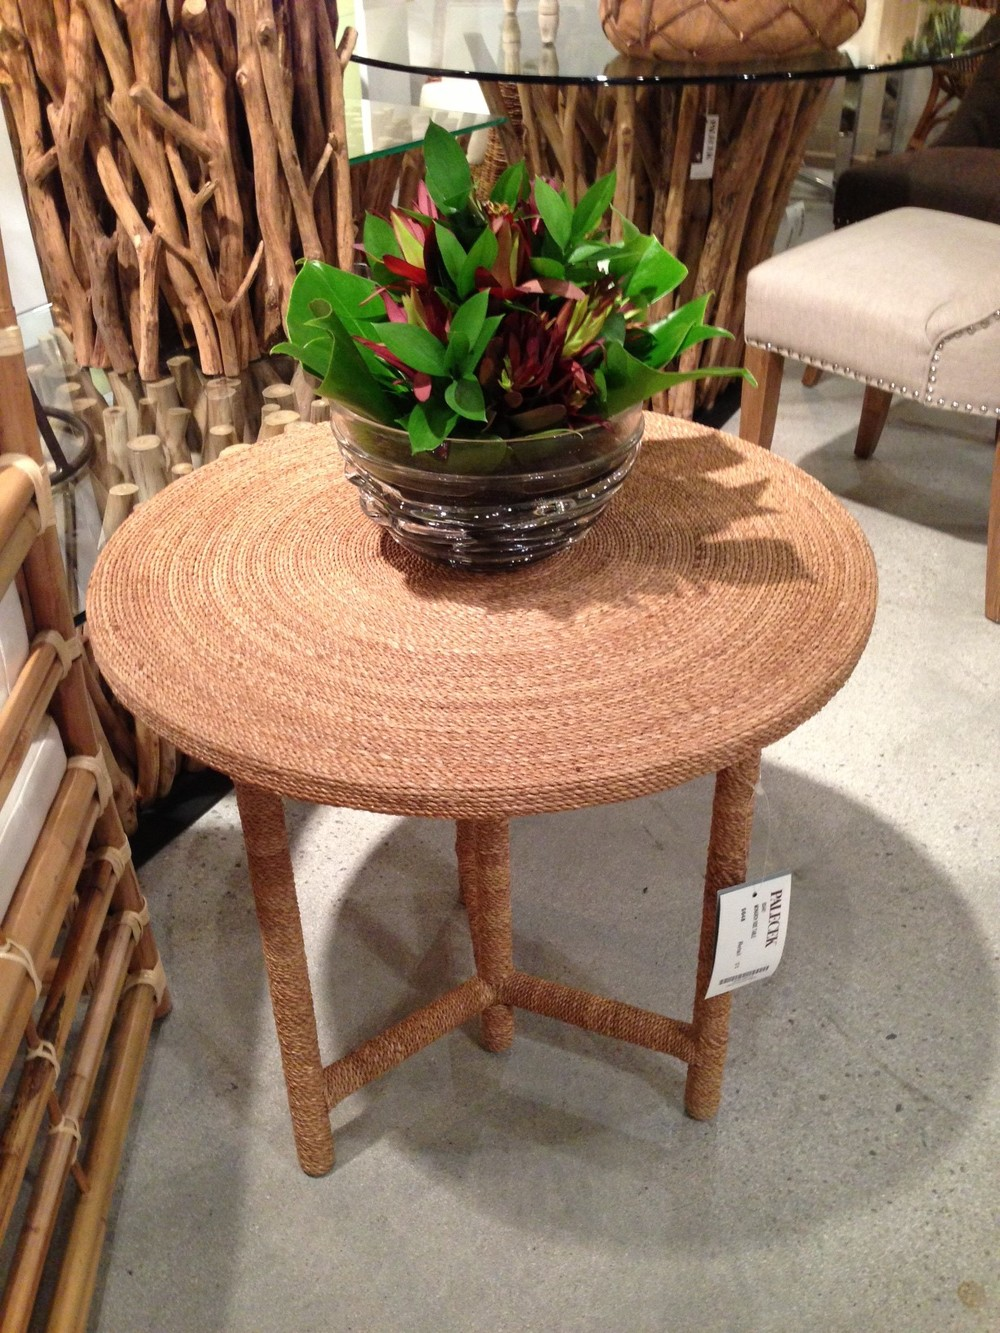 Rope table by Palacek. | #LVmkt, best, home, decor, furniture, interior design